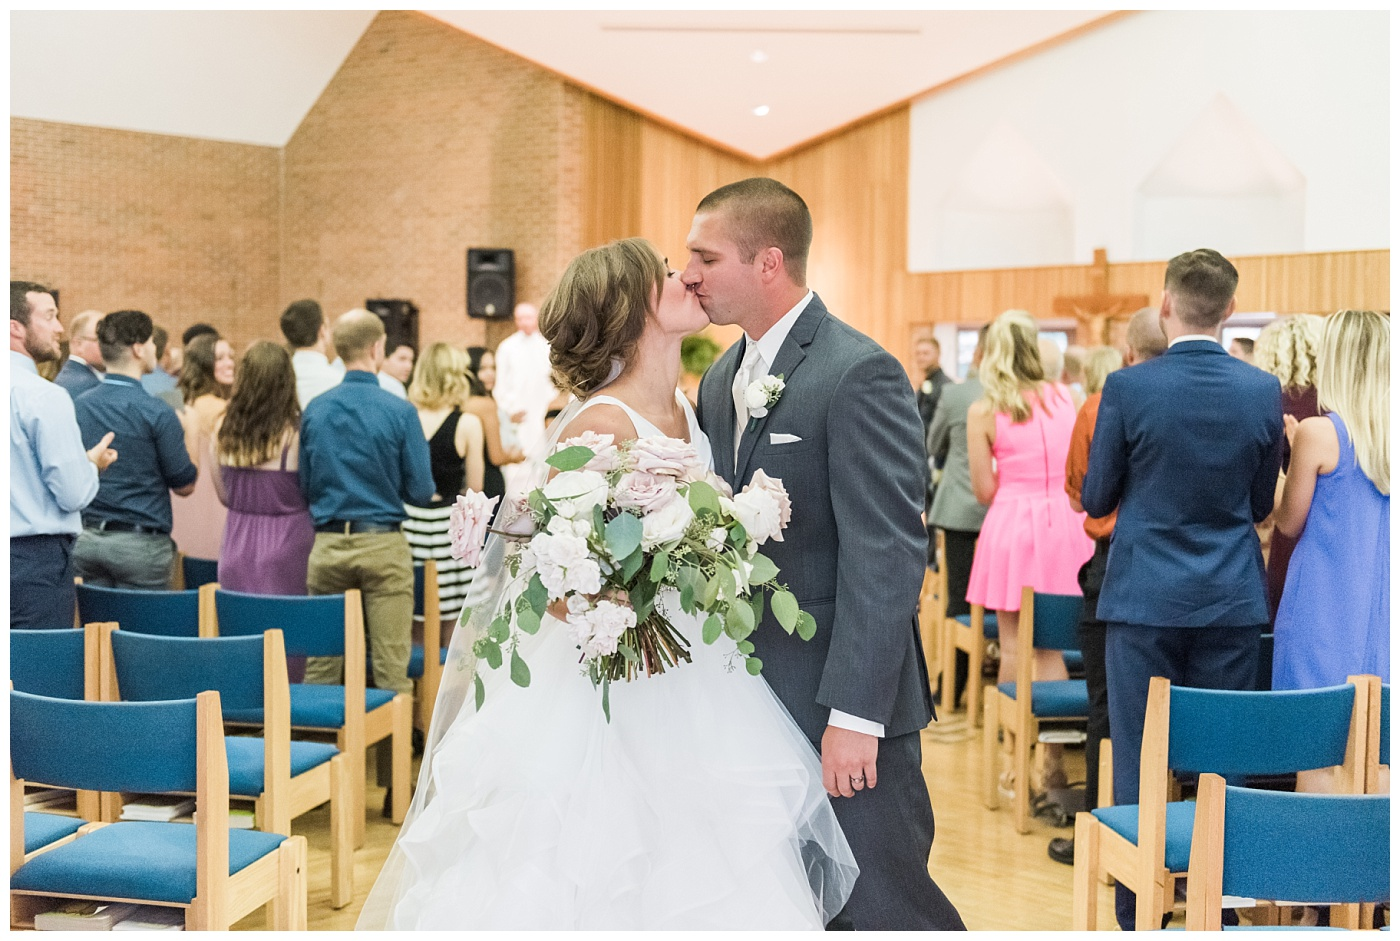 Stephanie Marie Photography Newman Catholic Center Ceremony Bella Sala Reception Tiffin Iowa City Wedding Photographer Chelsey Justin Meyers_0026-1.jpg